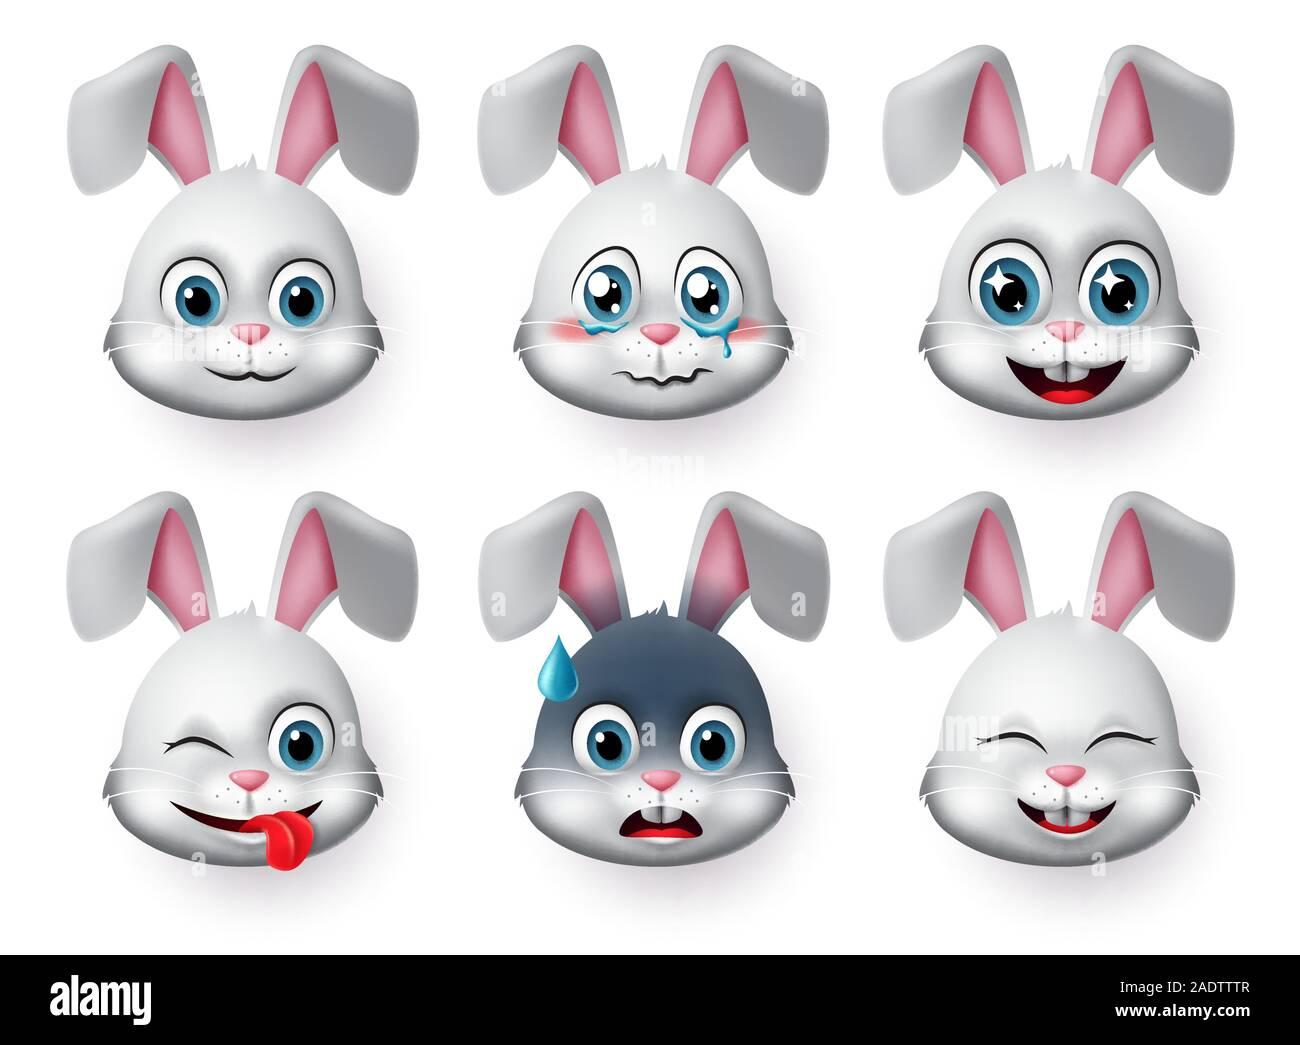 Emoticons And Emoji Rabbit Face Vector Set Rabbits Bunny Faces Animal Emojis In Naughty Crying Excited Smiling And Happy Facial Expressions Stock Vector Image Art Alamy